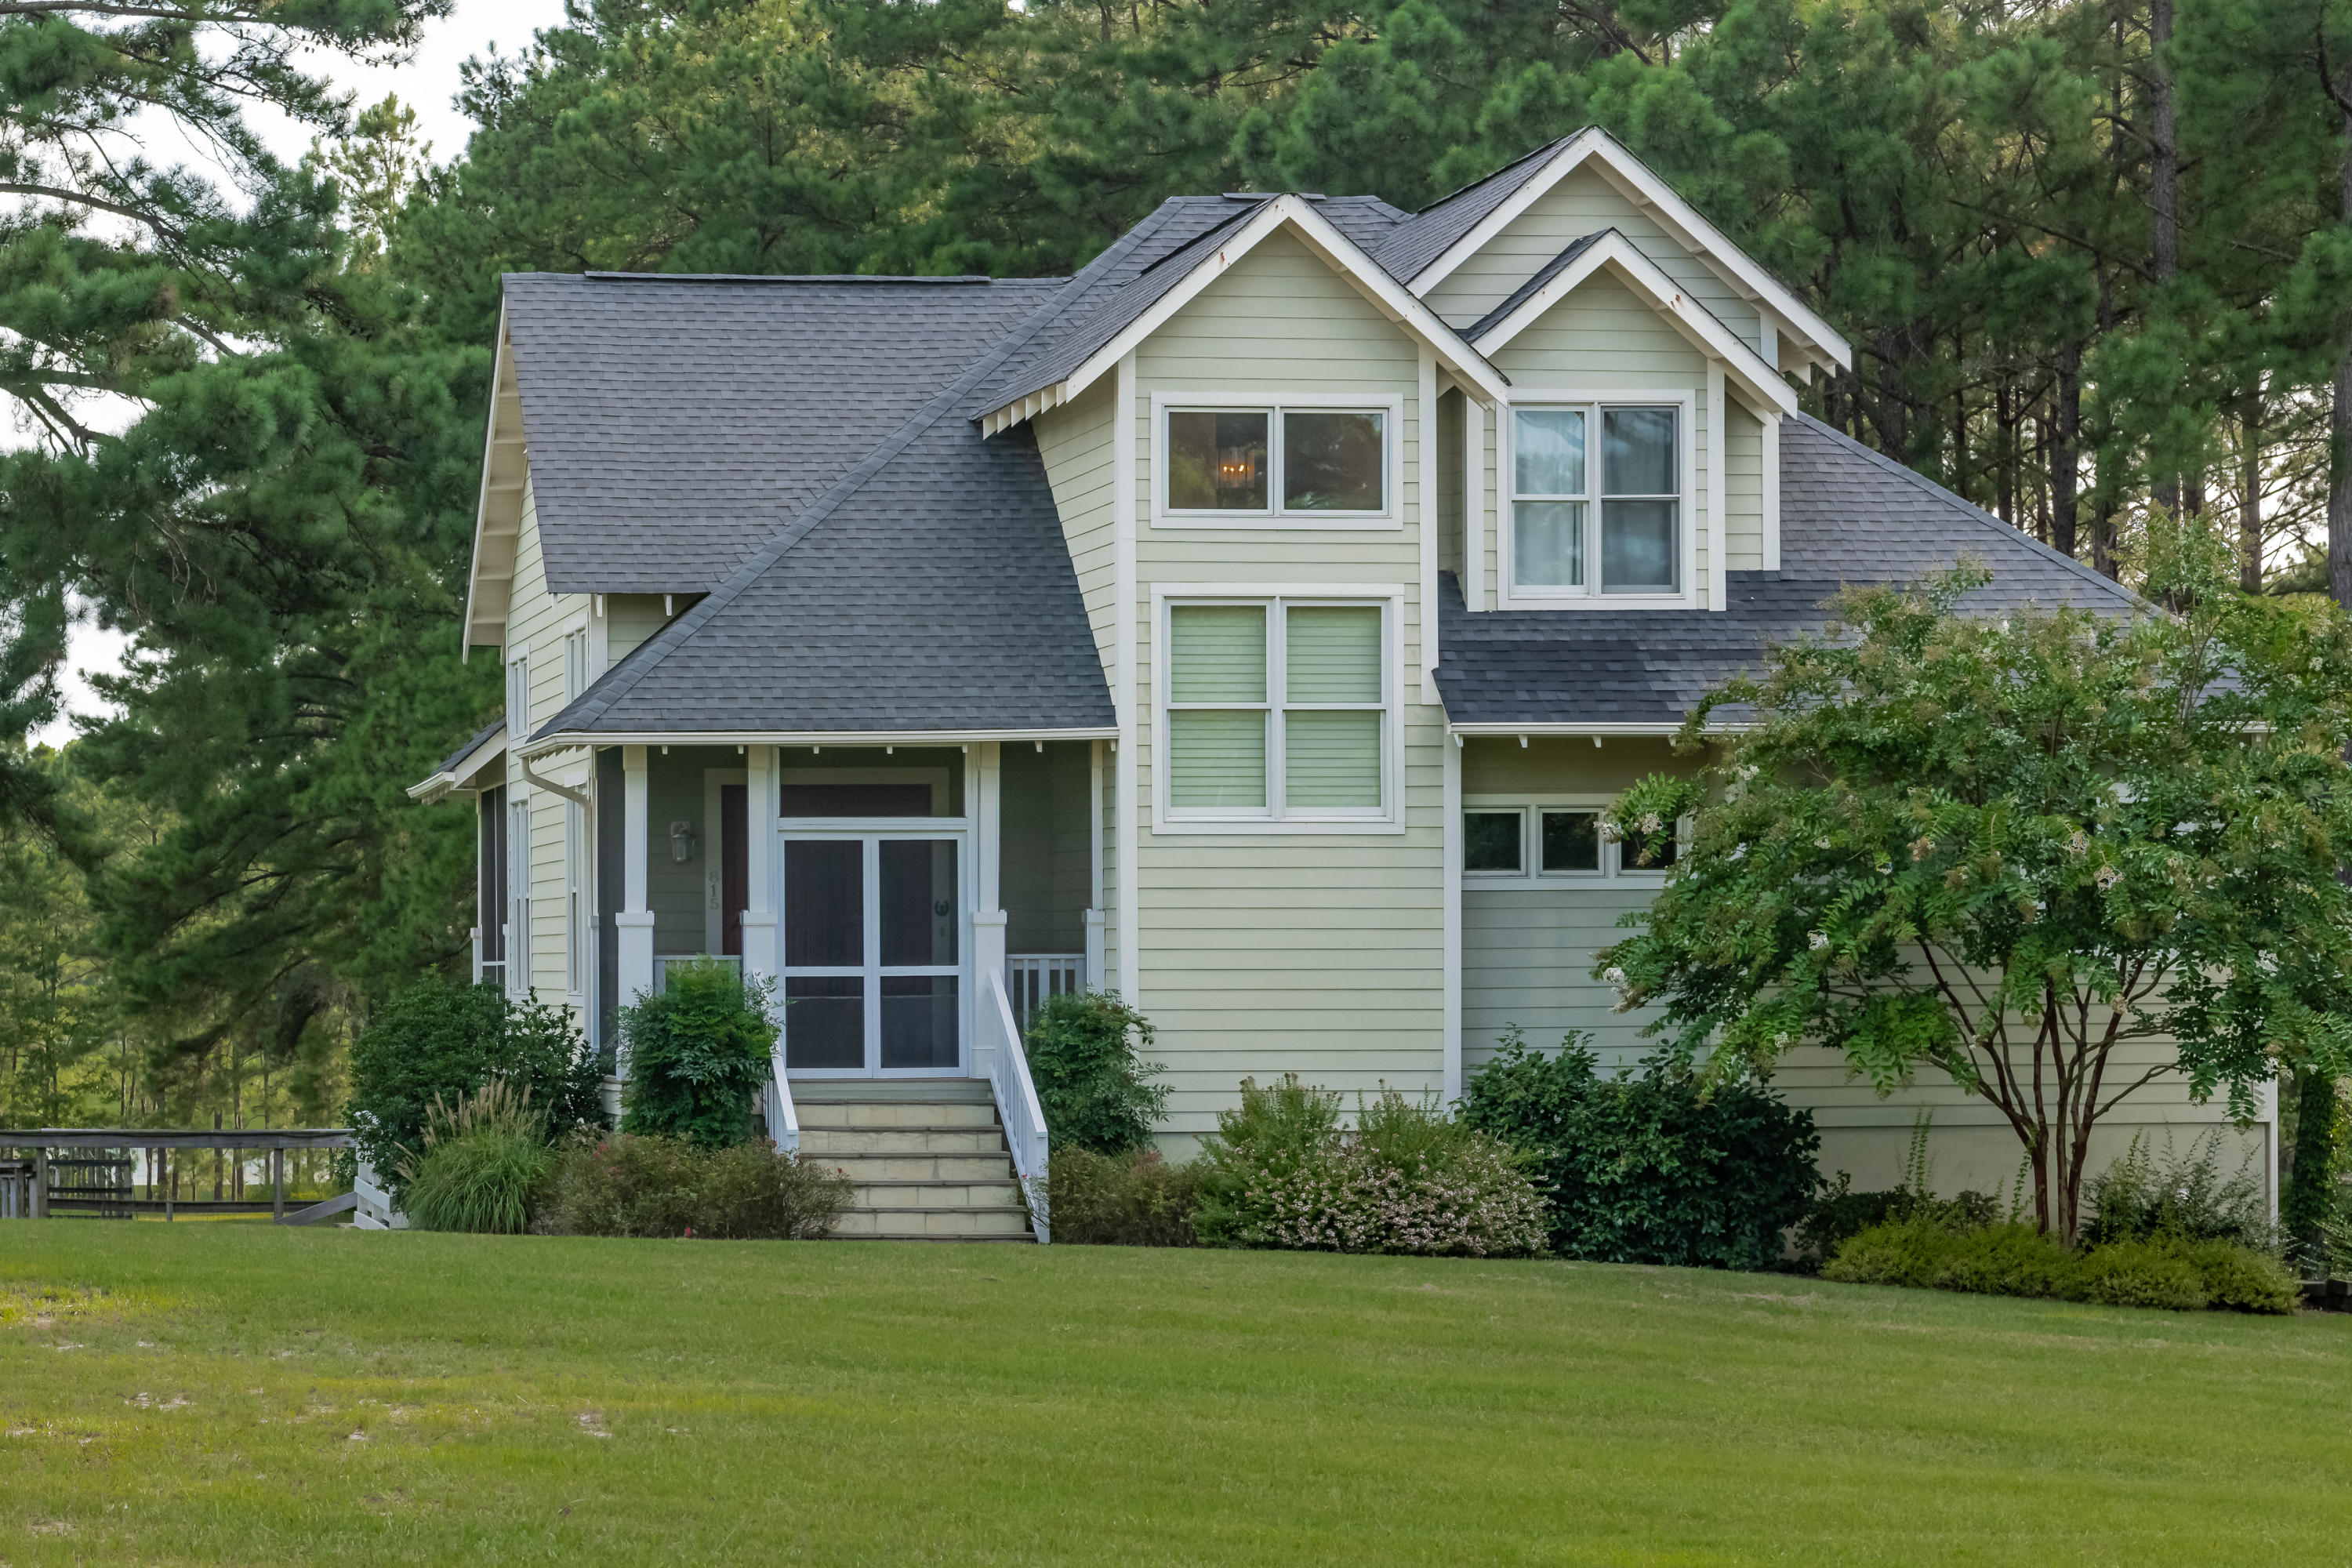 815  Trackside Drive, Aberdeen in Hoke County, NC 28315 Home for Sale